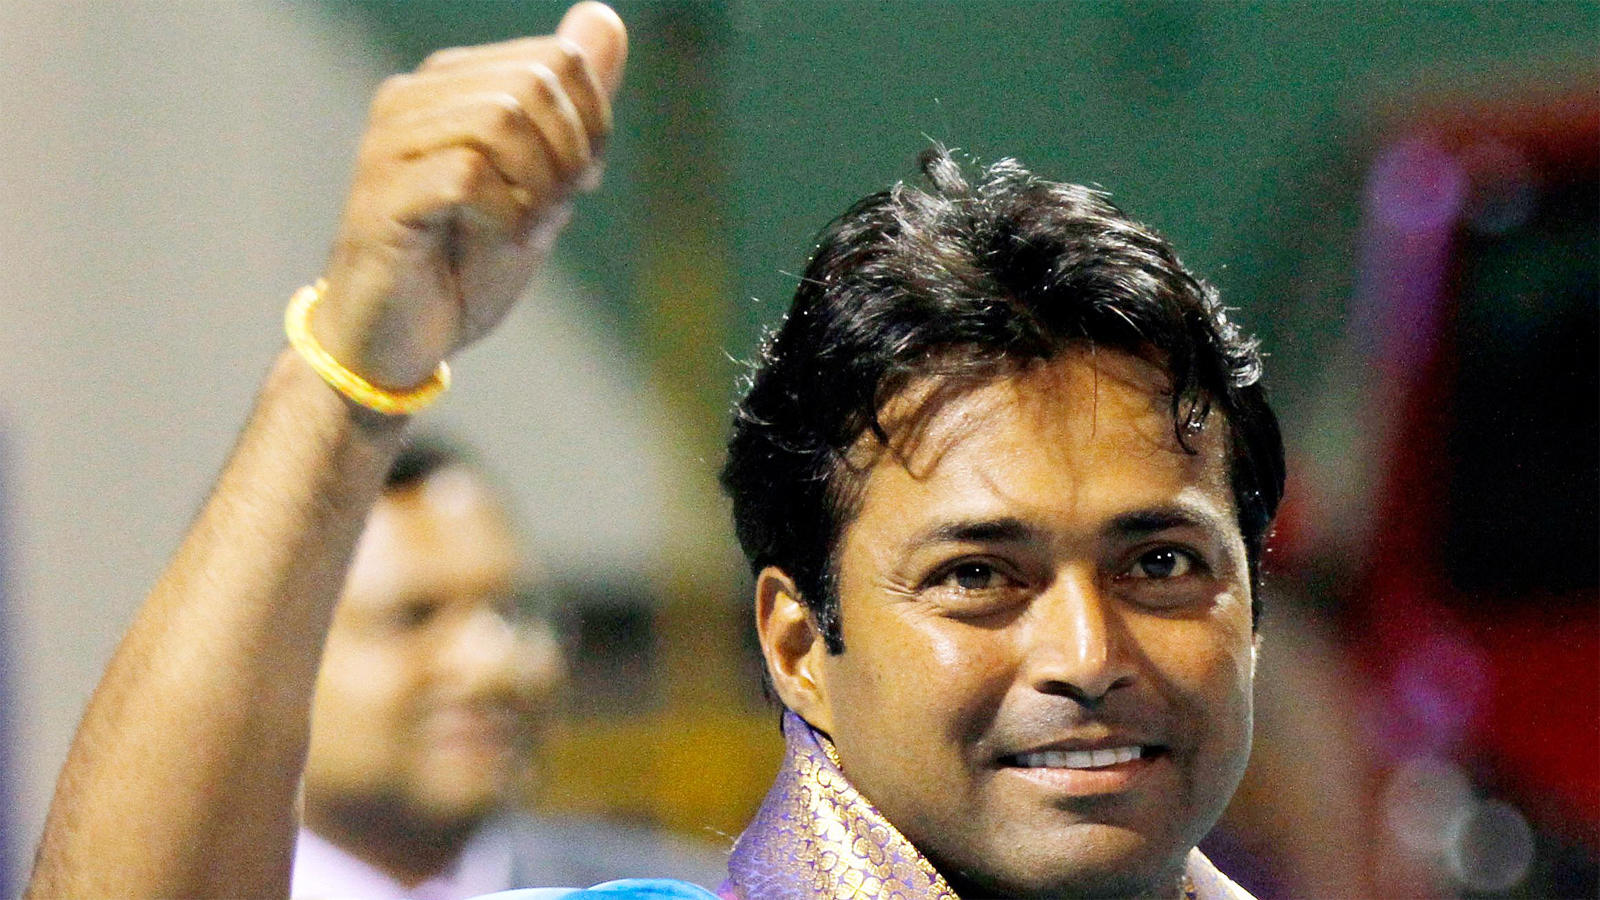 after-wearing-blue-jersey-we-never-ask-who-were-playing-against-leander-paes